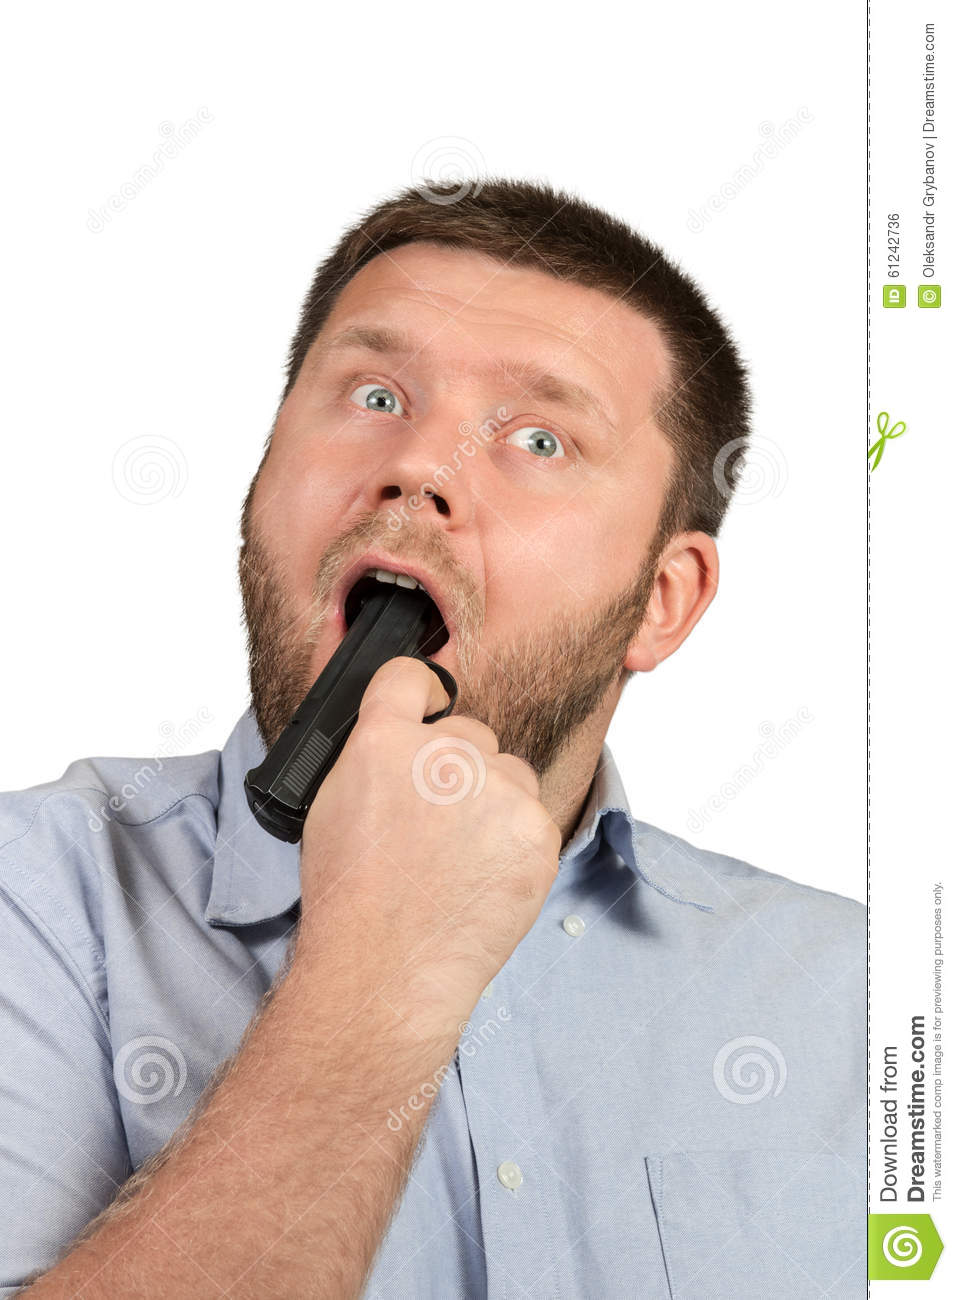 Man With Gun In Mouth 76